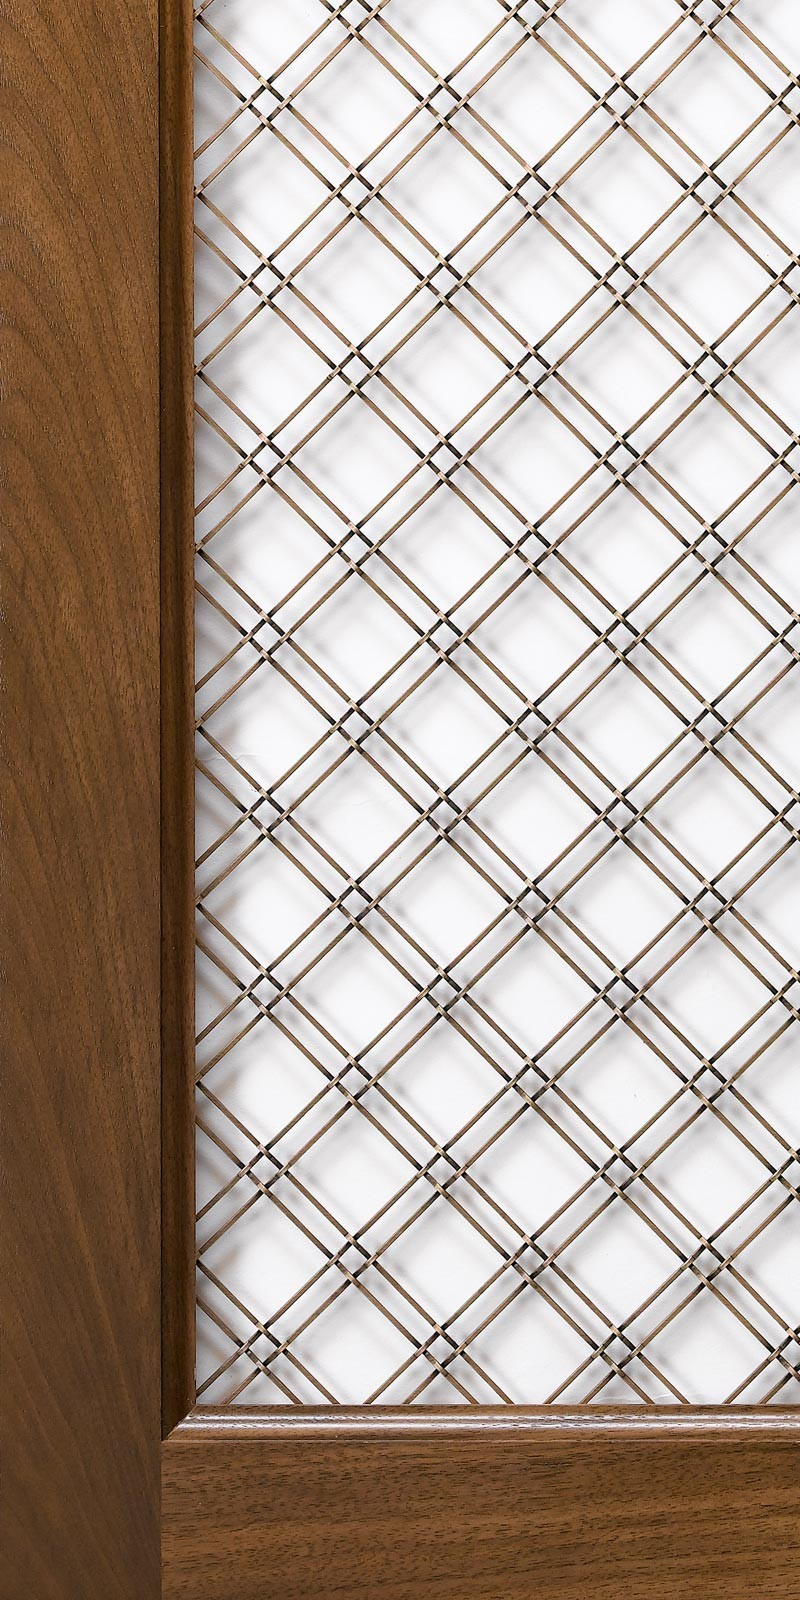 Brass Grilles For Cabinets  Cabinets Decorating Ideas